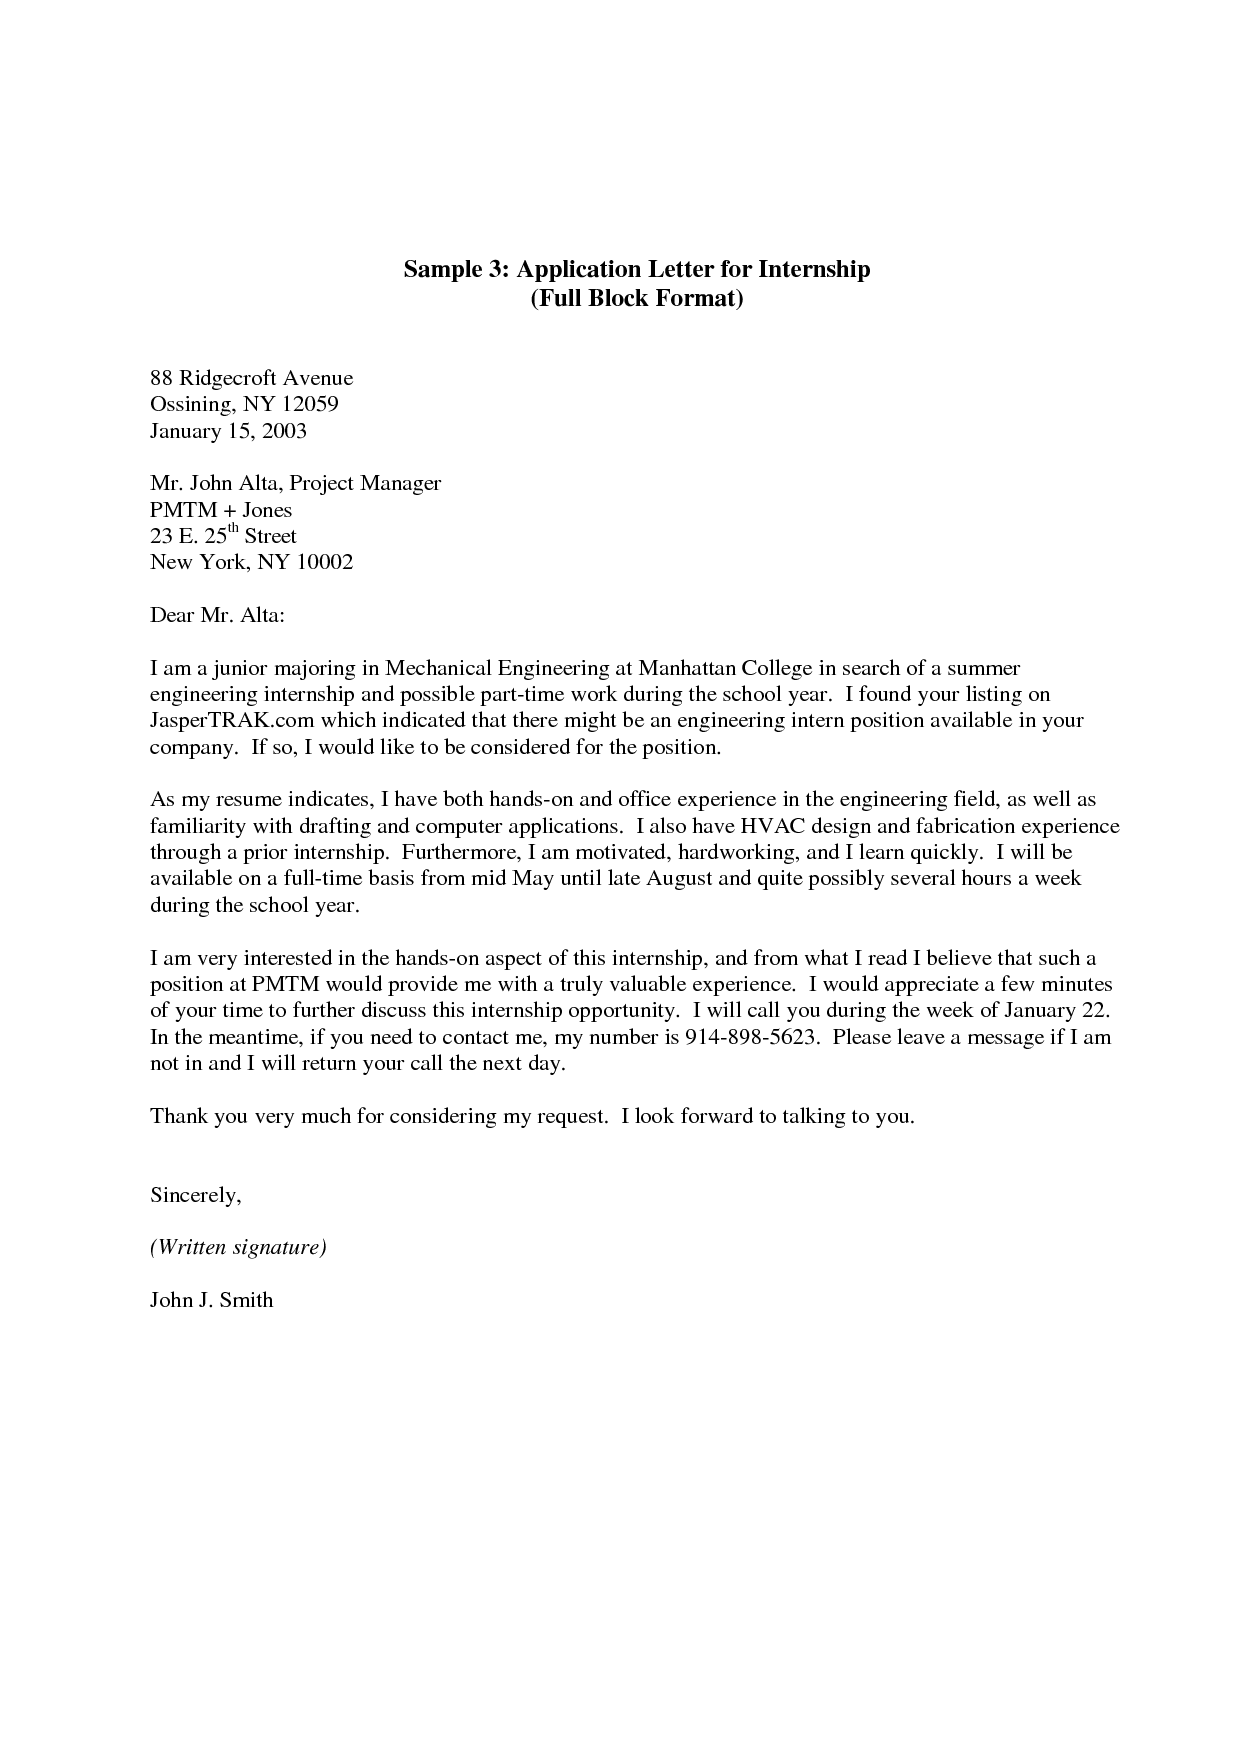 internship application letter here is a sample cover letter for applying for a job or - Cover Letter Of Application